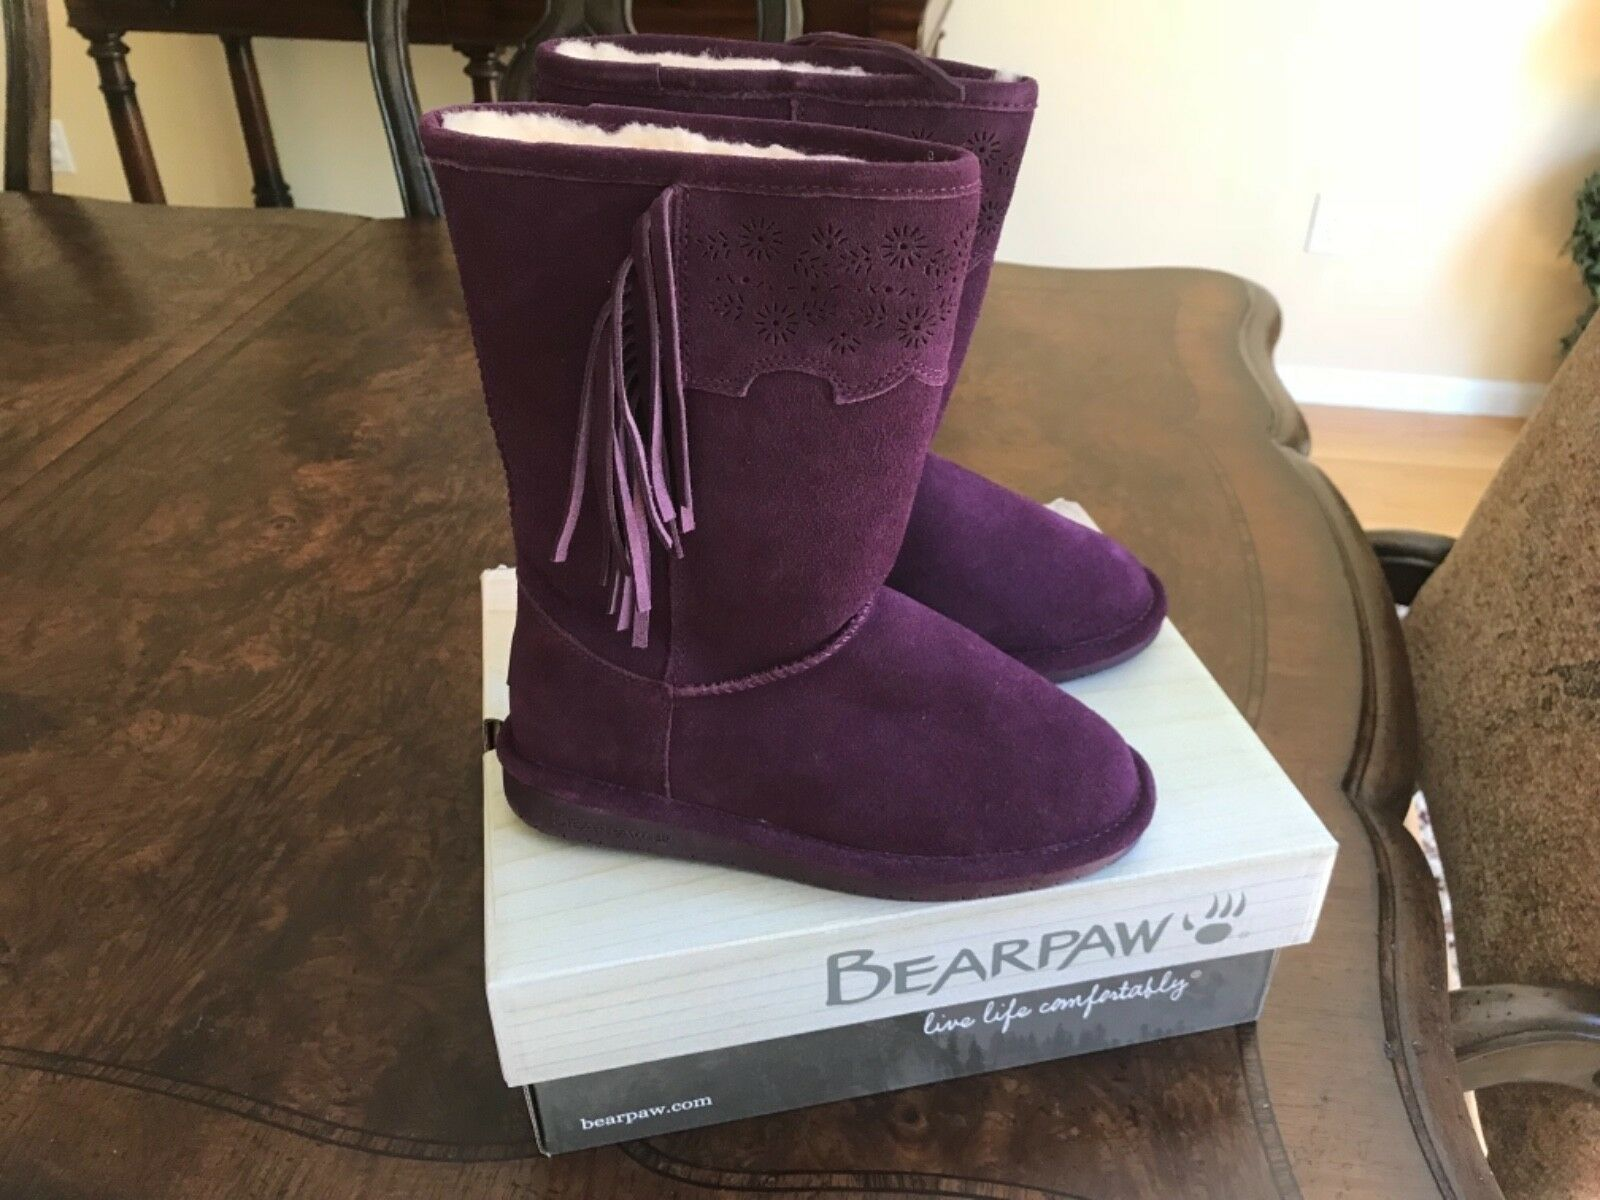 Bearpaw water resistant genuine sheep skin boots, size 7. 7. 7. Brand new with box 9bd196